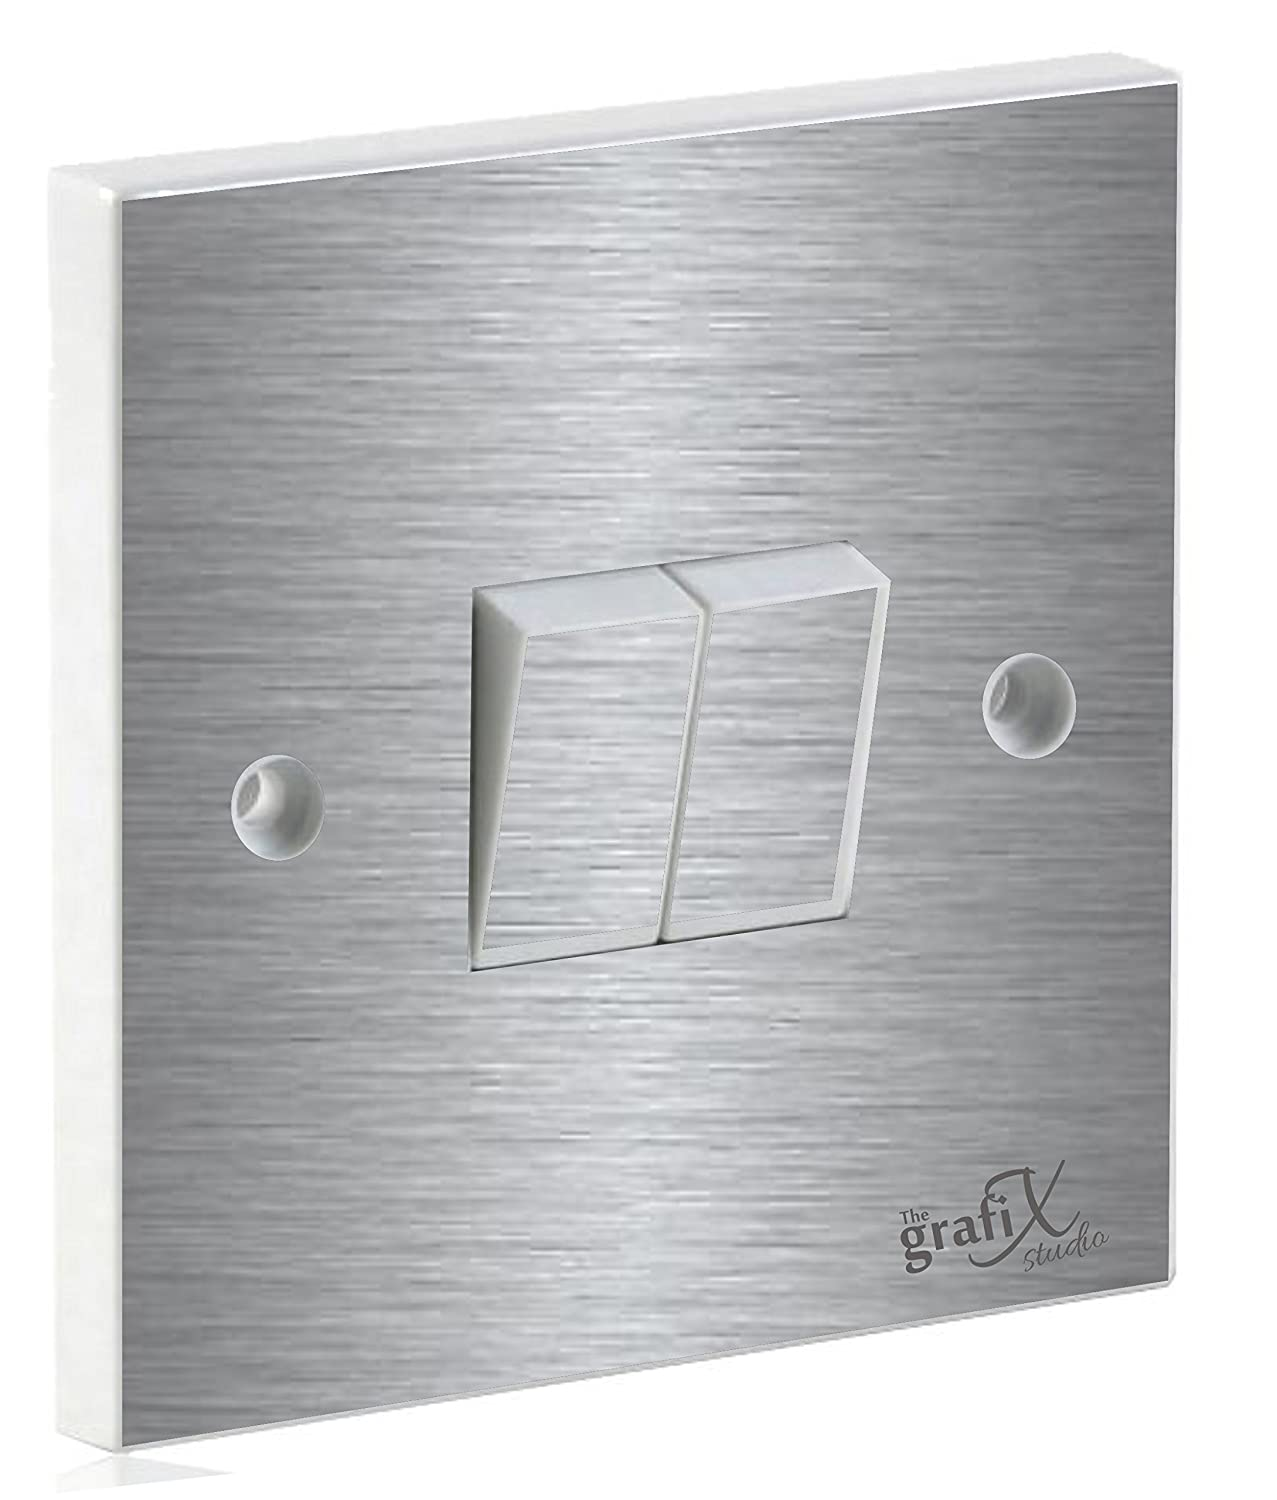 Brushed Silver Double Light Switch Sticker Vinyl / Skin cover